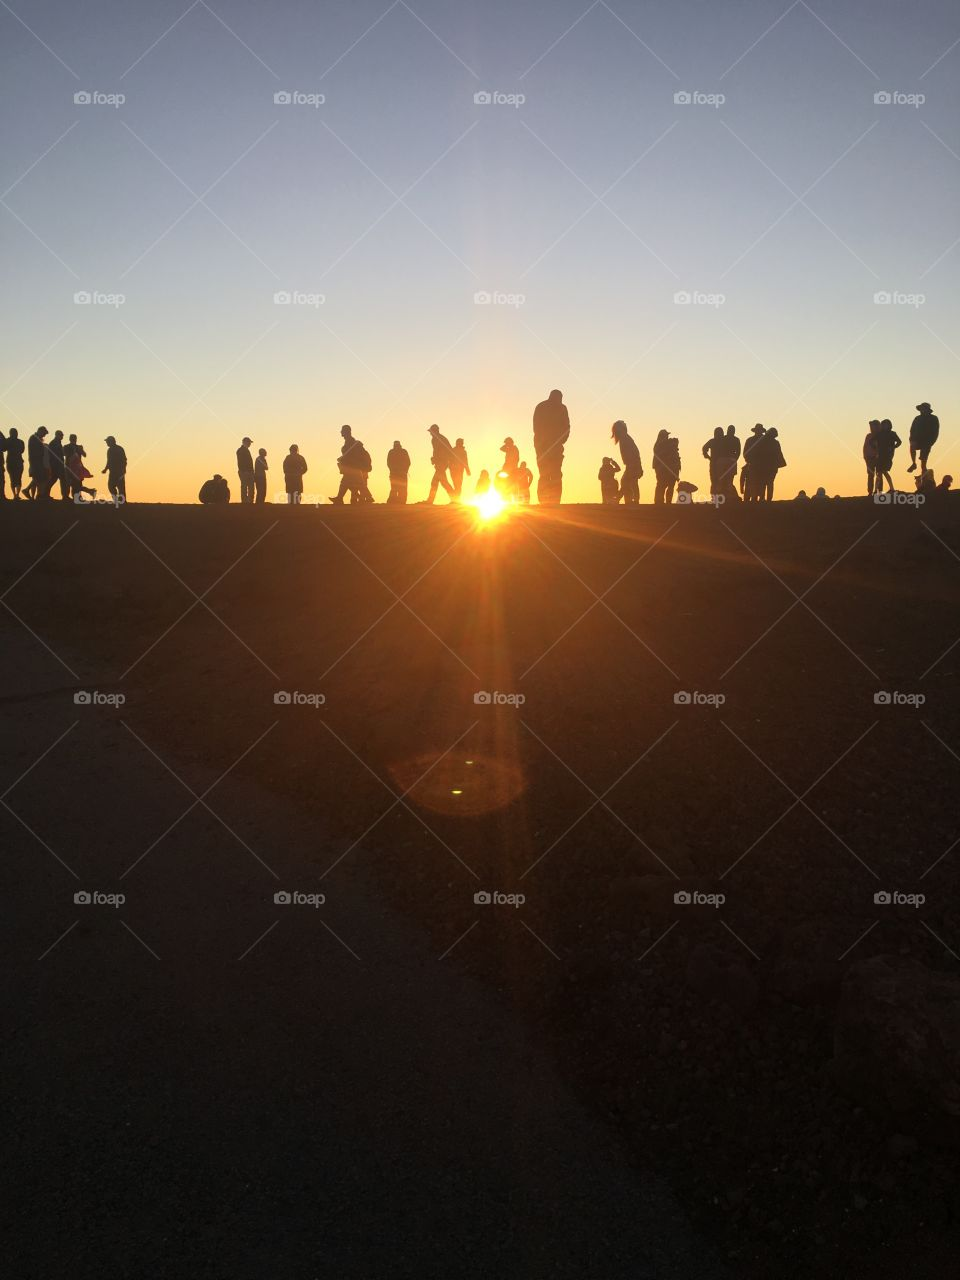 A group of people stand along a mountain ledge, silhouetted by the sunset.